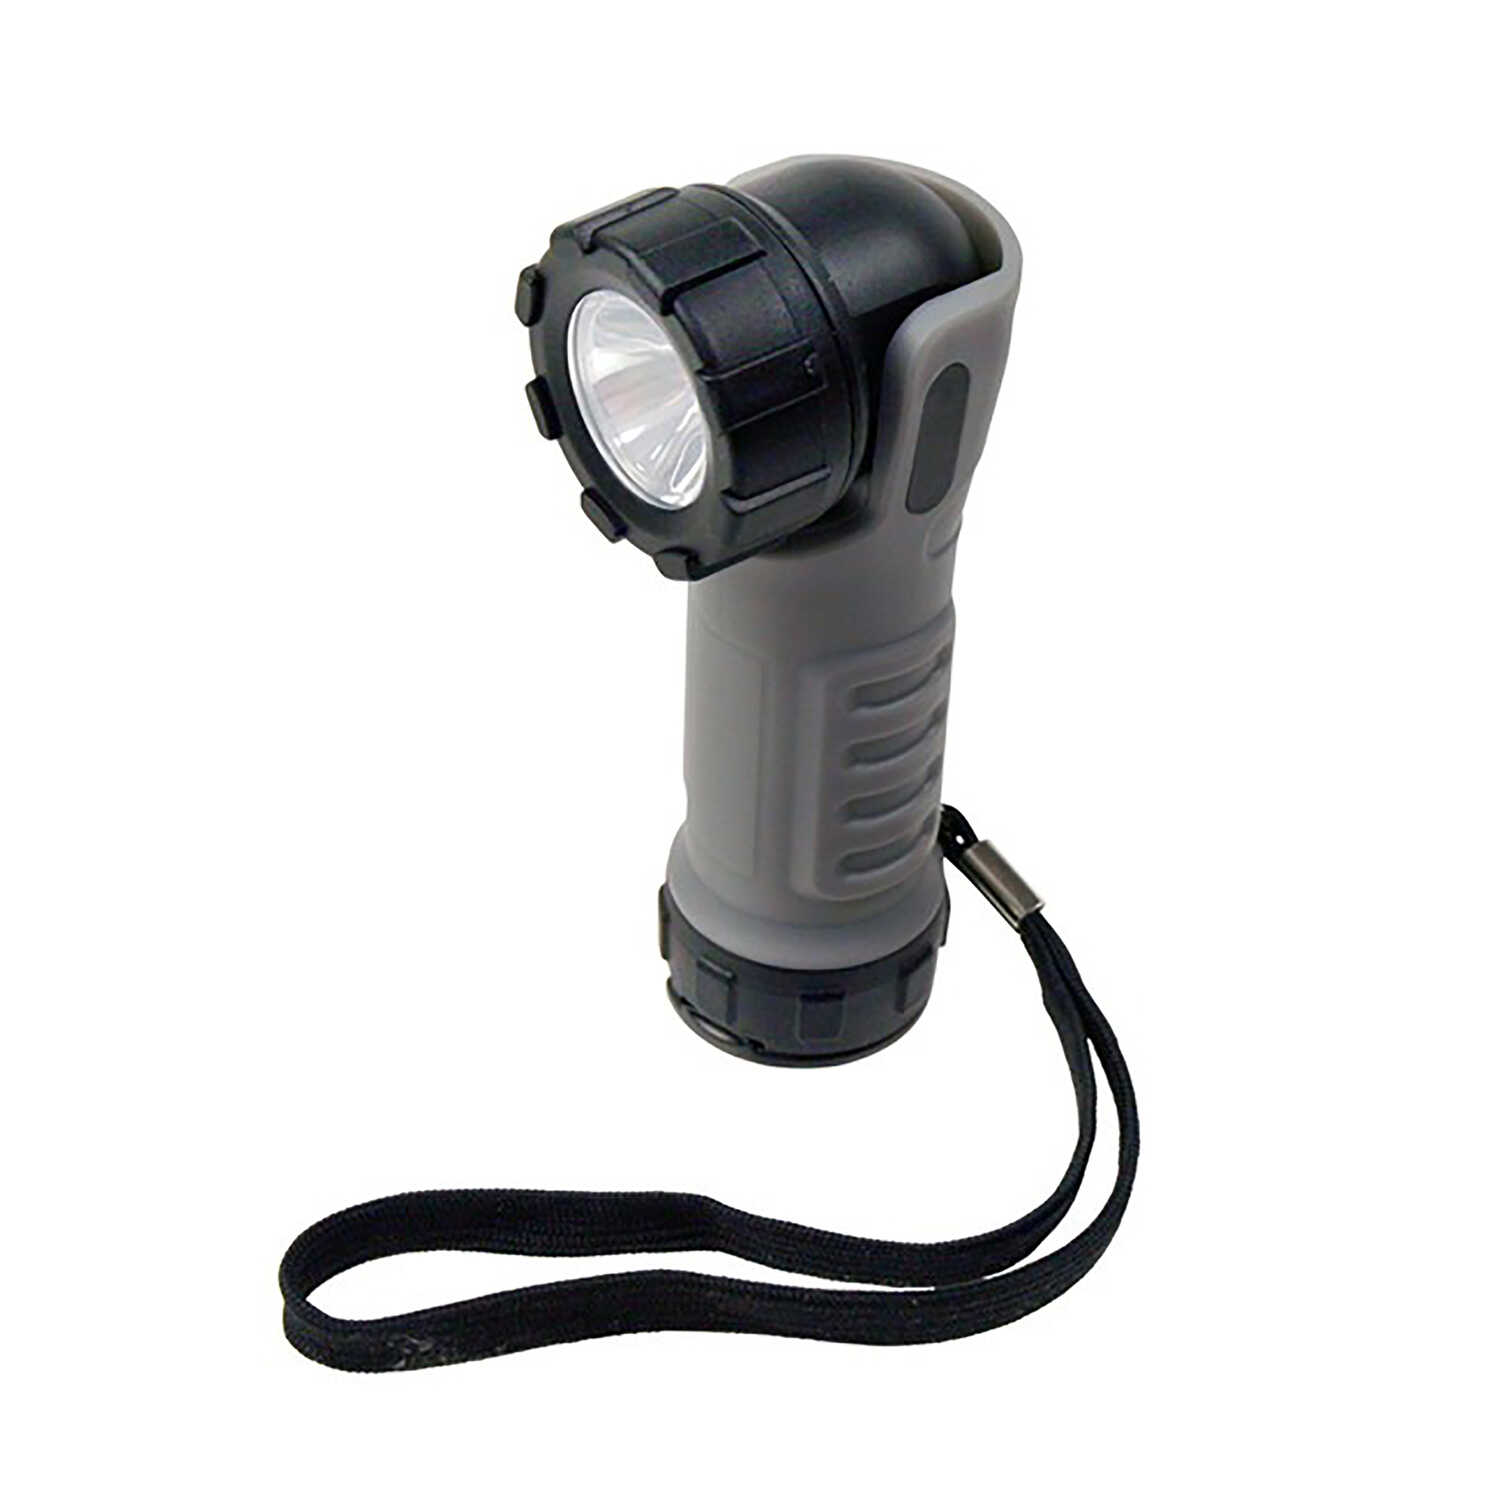 Dorcy  Pro Series  187 lumens Black/Gray  LED  Work Light  AAA